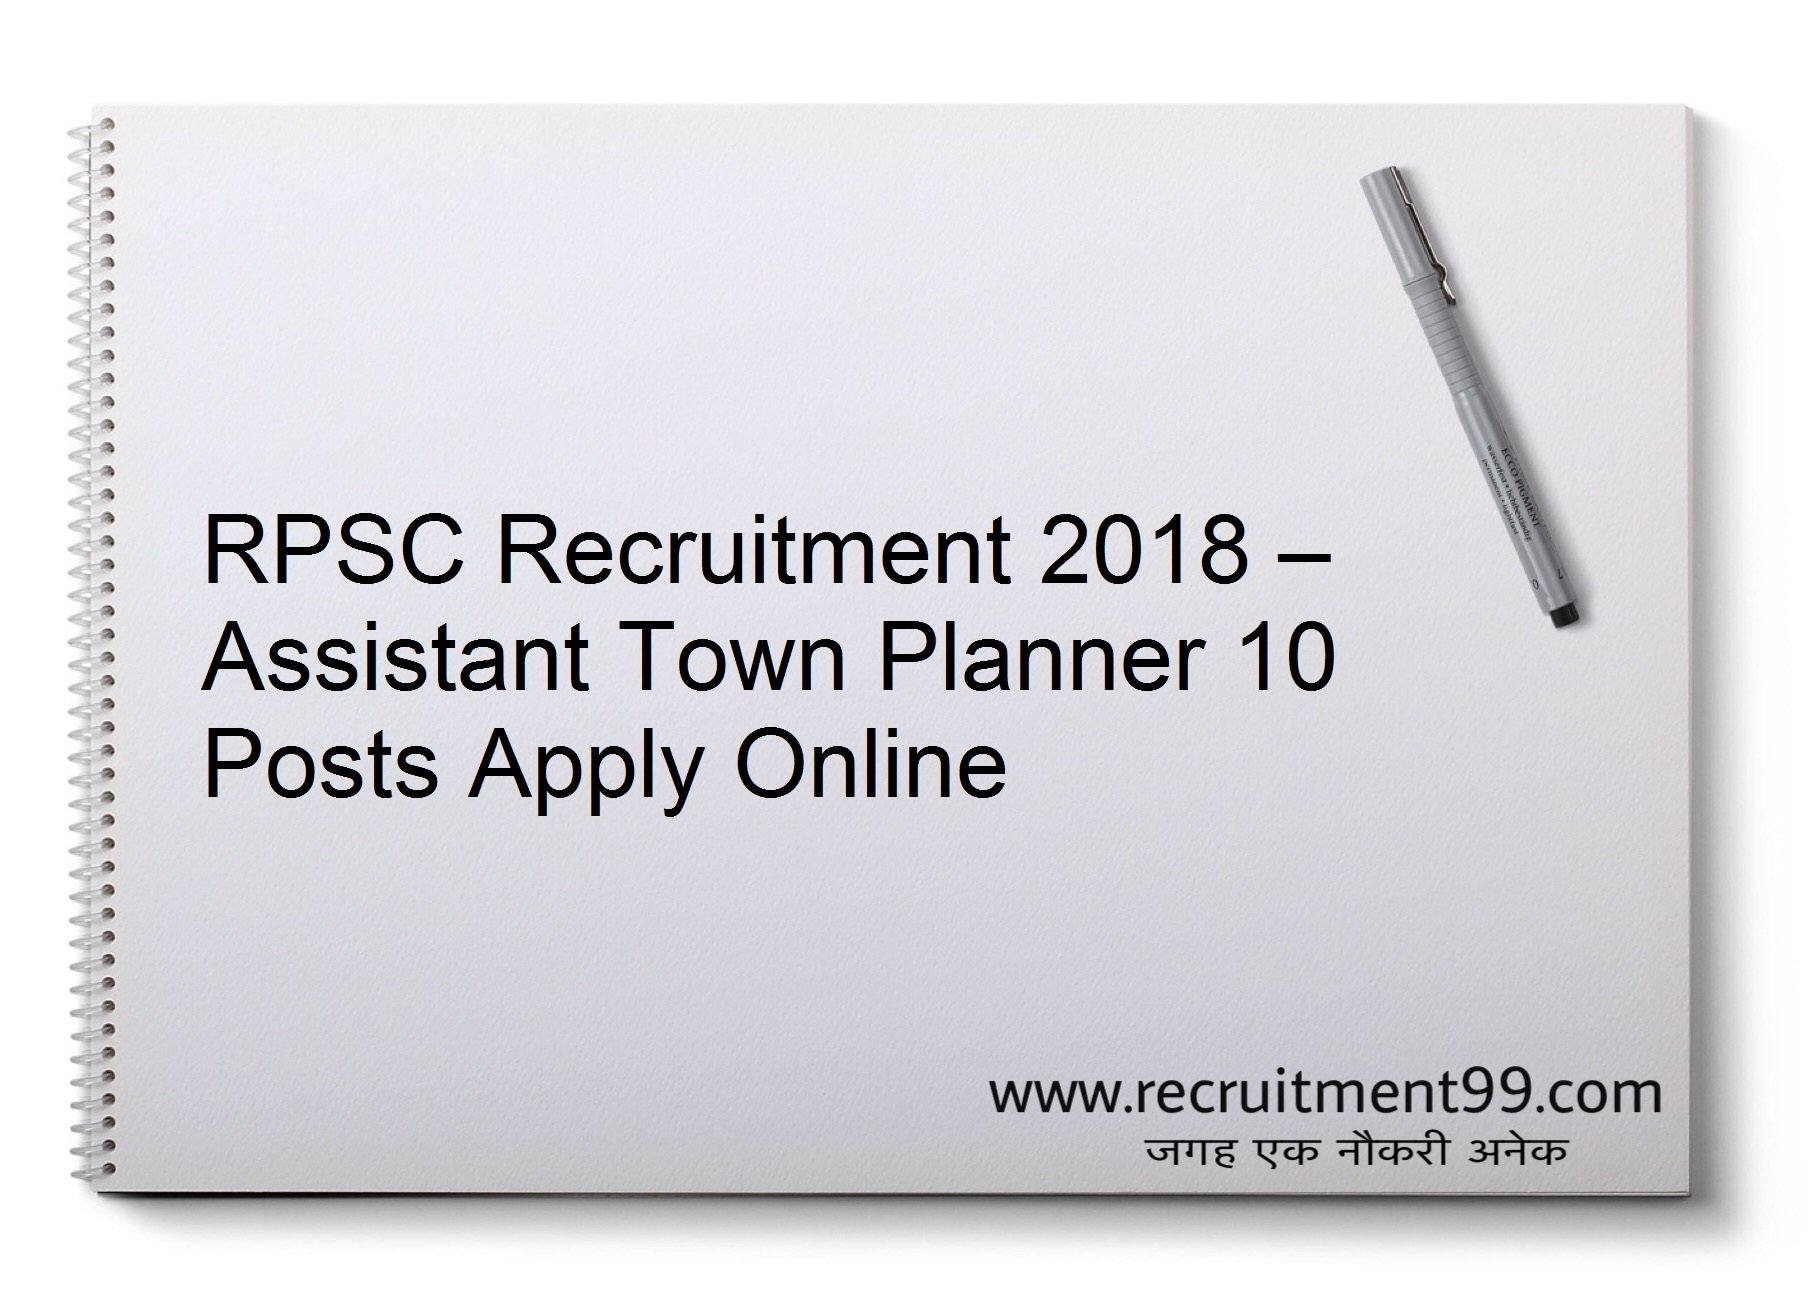 RPSC Assistant Town Planner Recruitment Admit Card Result 2018